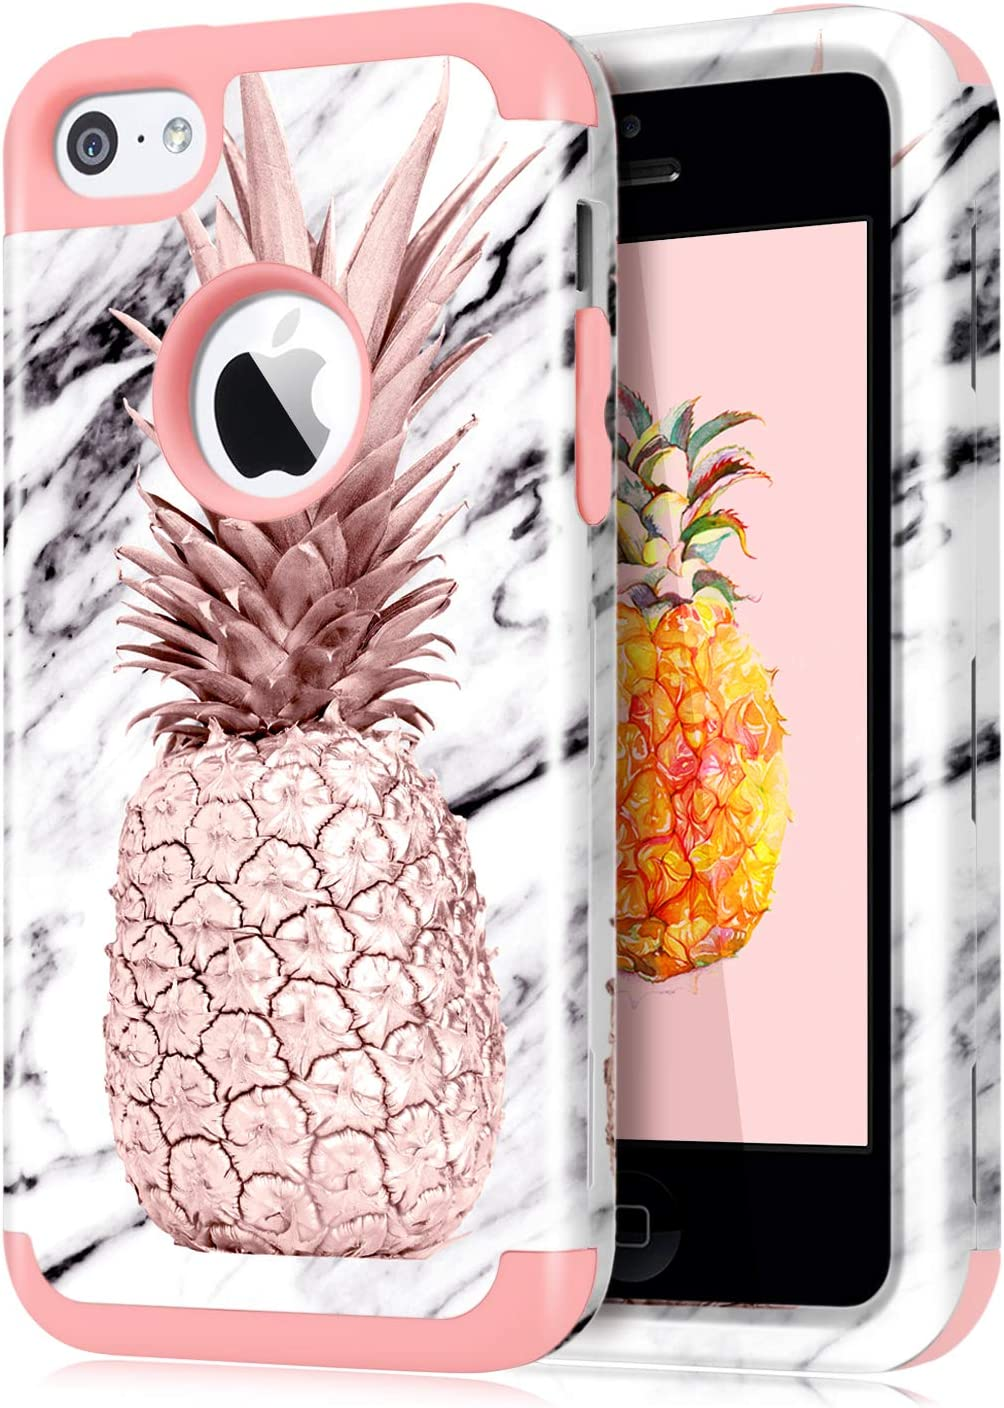 Dailylux Shockproof Case for iPhone 5 / 5C / 5S / SE, PC + Soft Silicone Three Layers Armor Anti-Slip Protective Defensive Hard Back Cover, Marble Pineapple